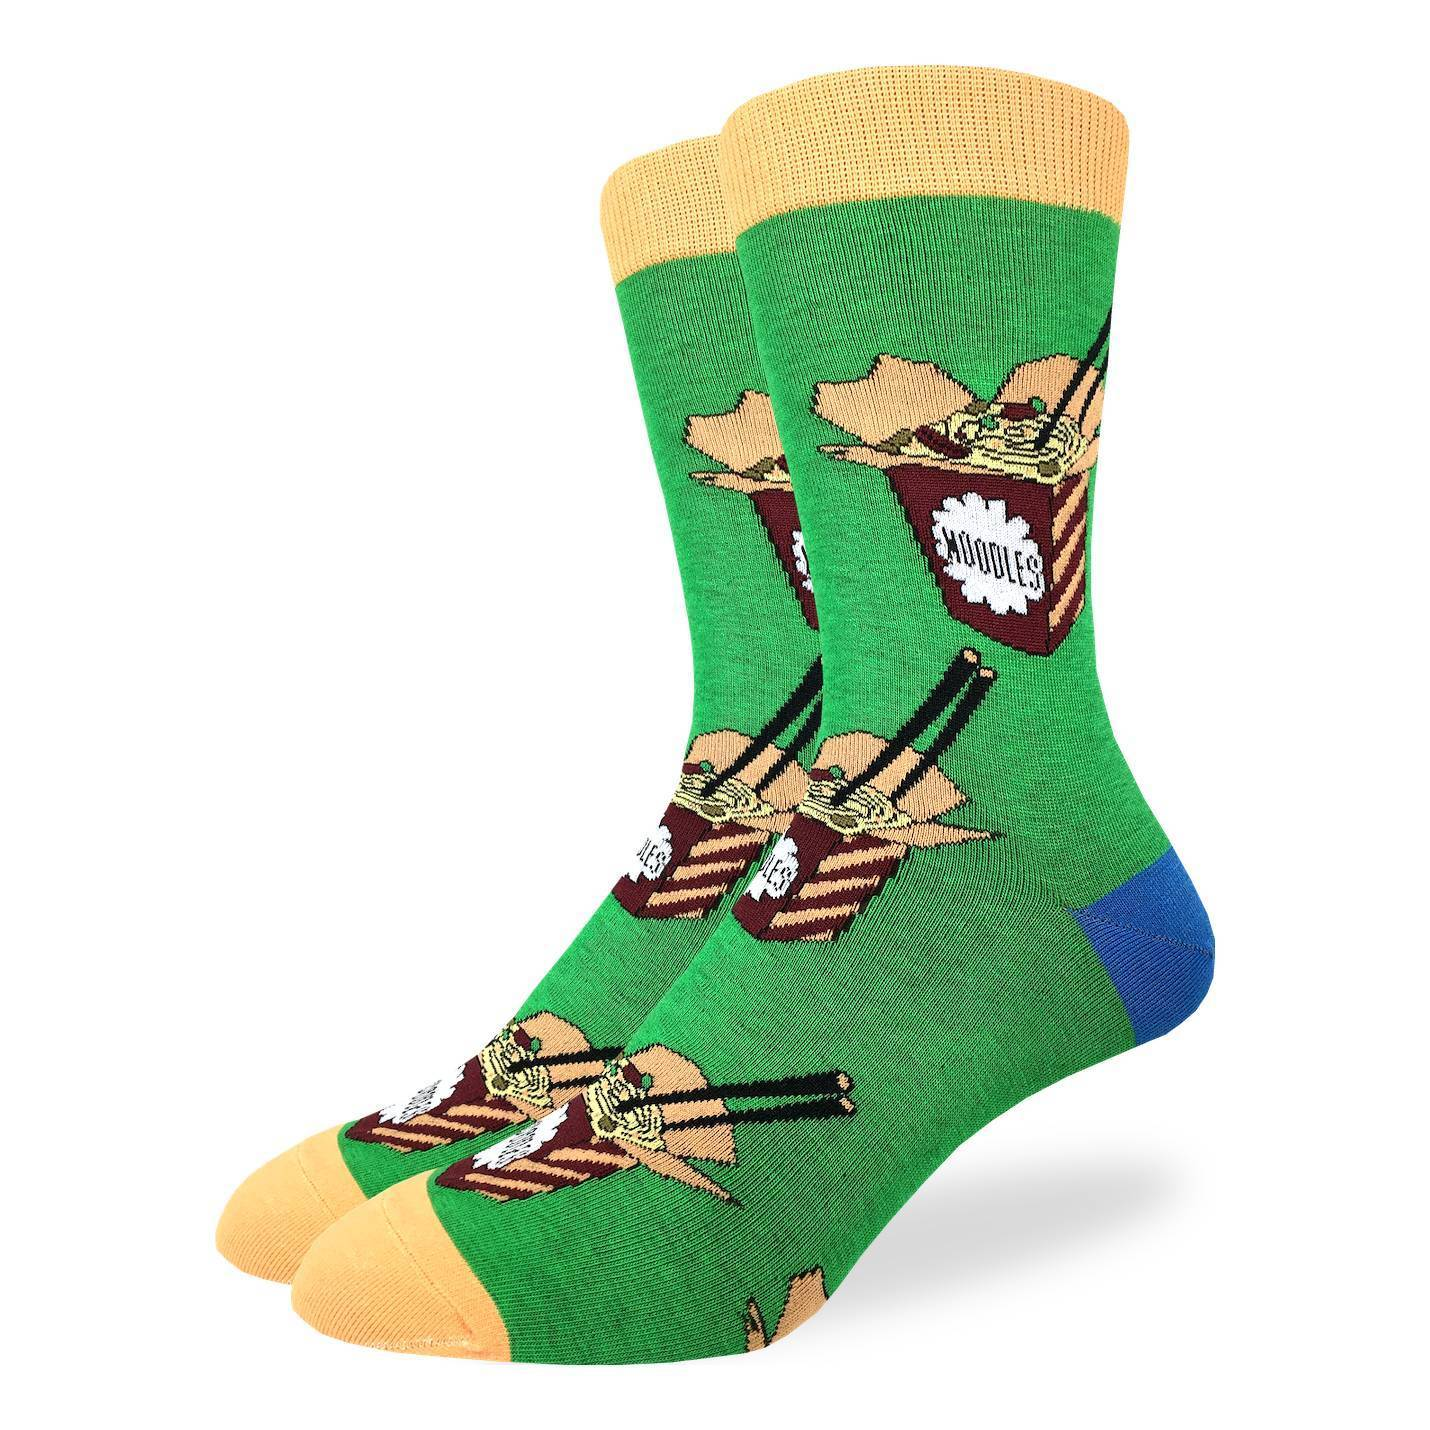 Men's King Size Noodles Socks - Good Luck Sock